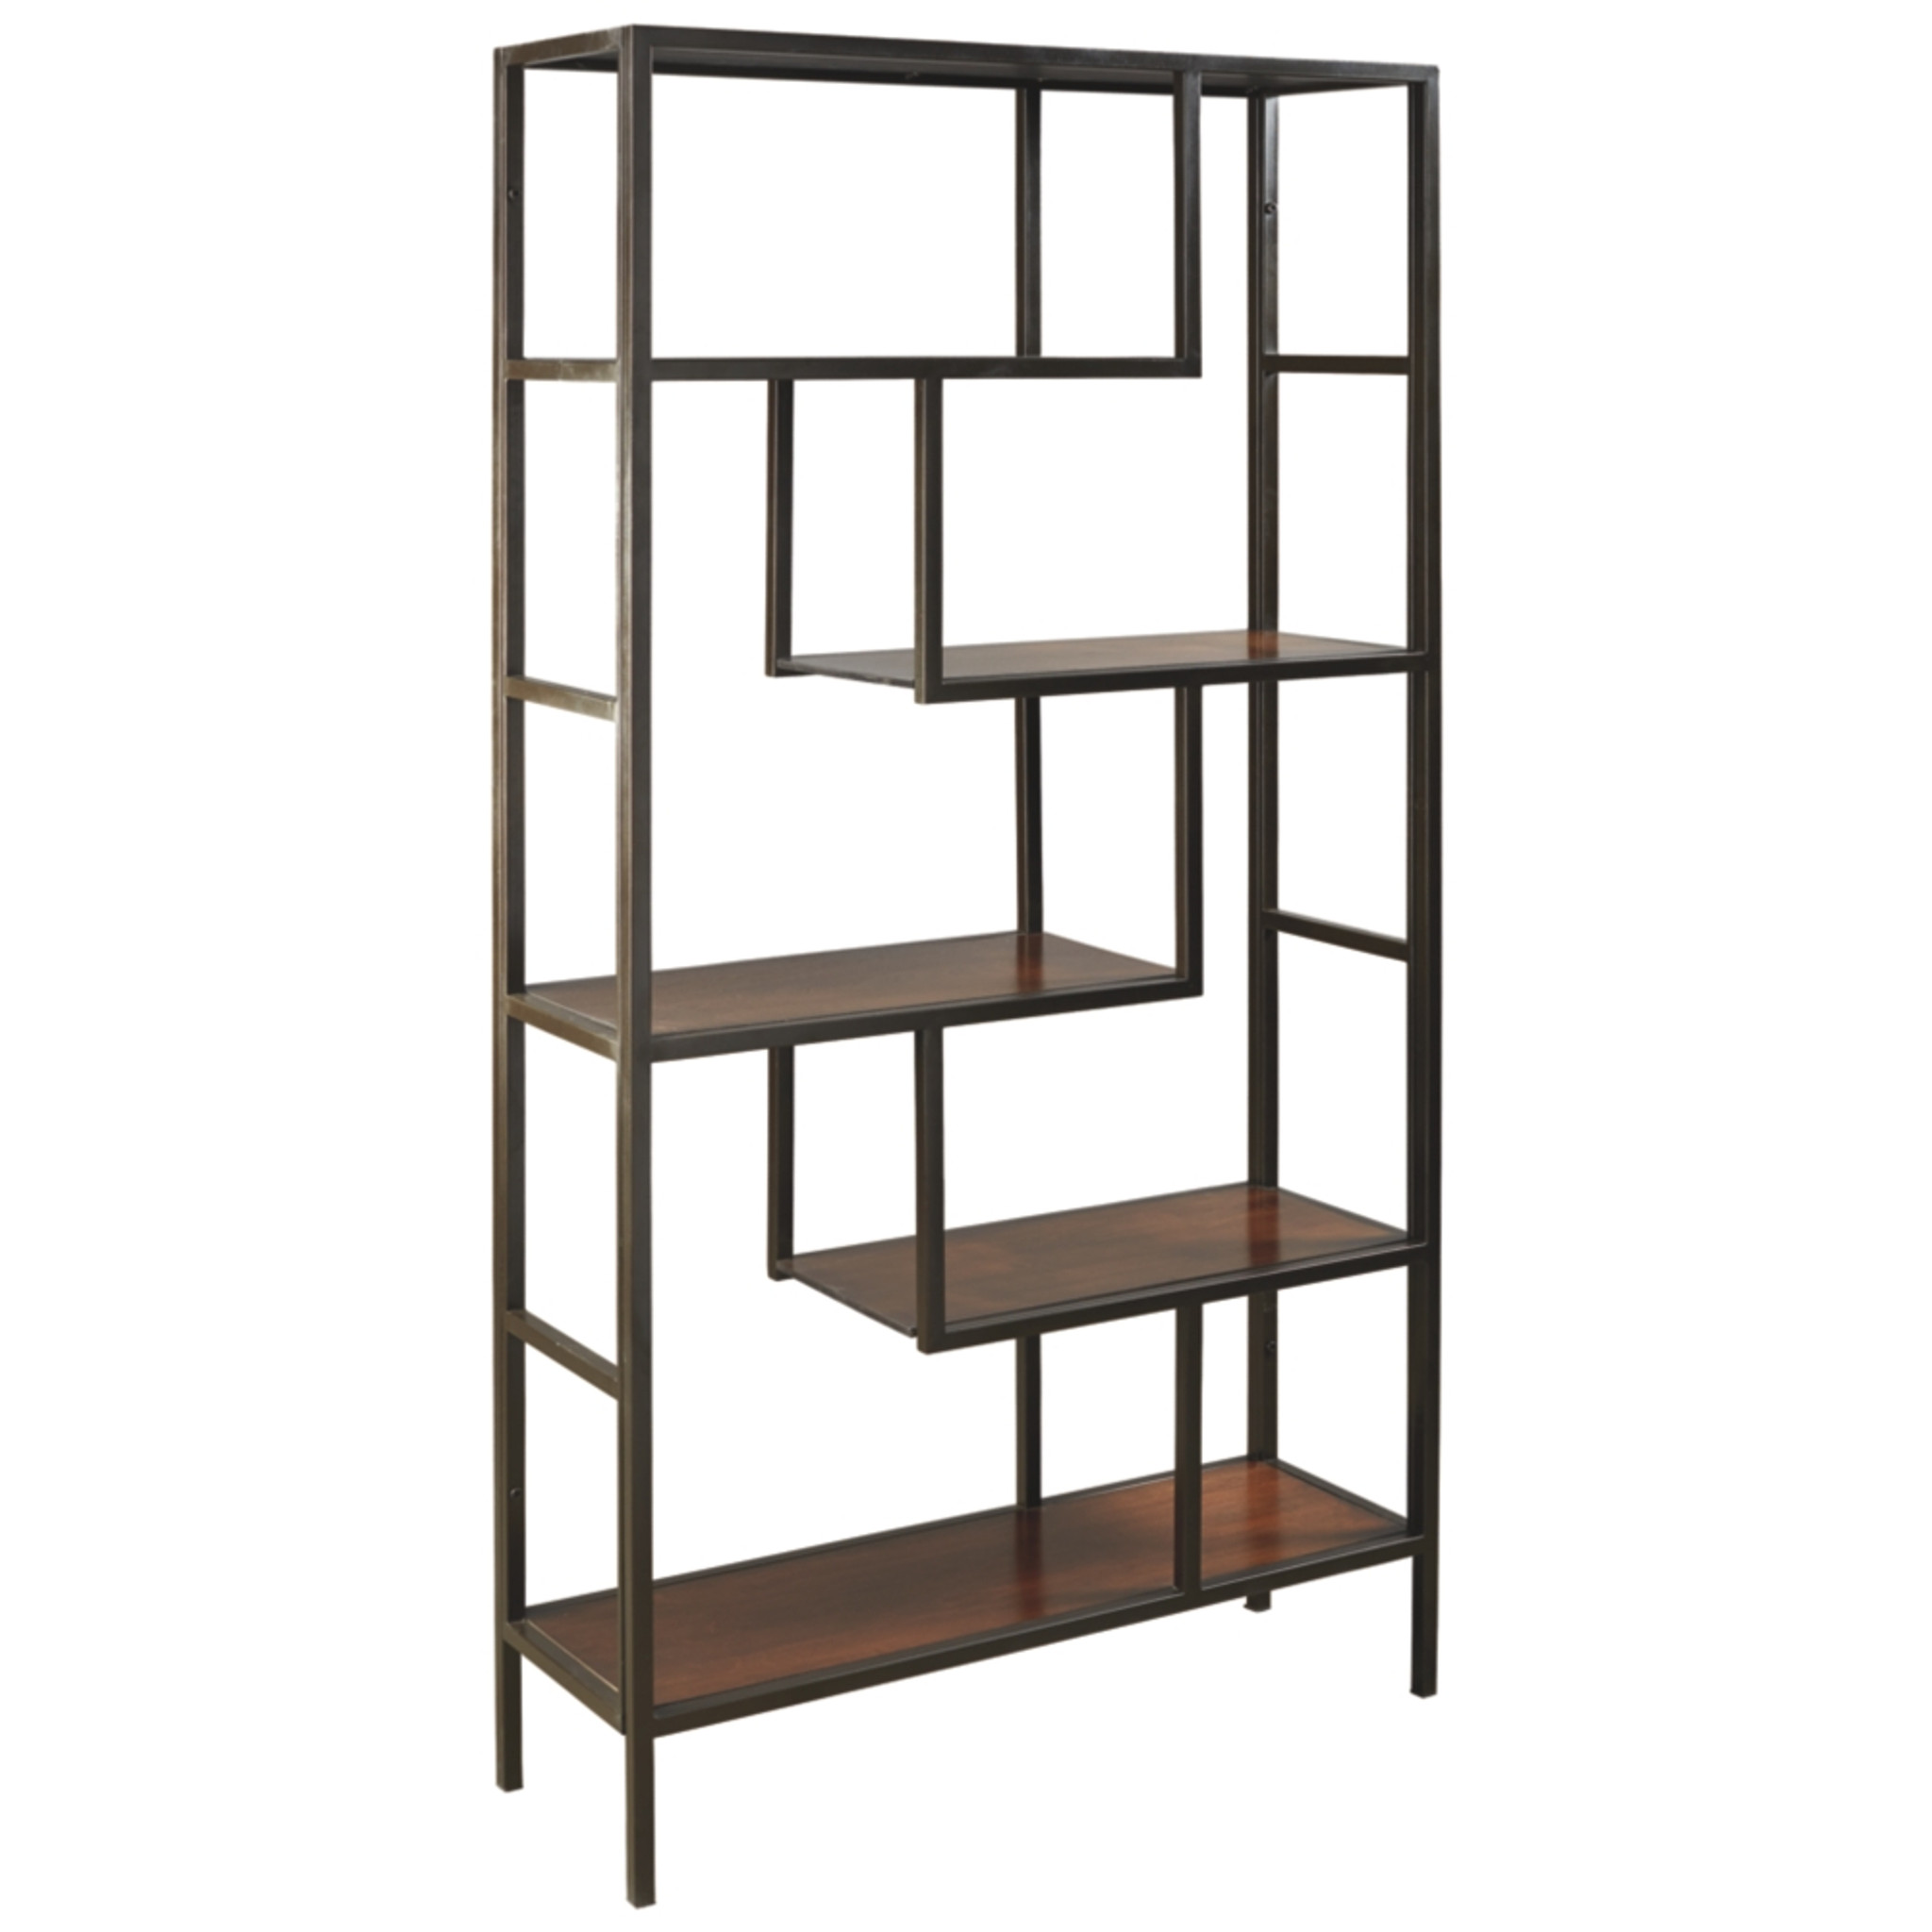 A4000021 Frankwell Brown Black Bookcase Collection By Ashley Furniture